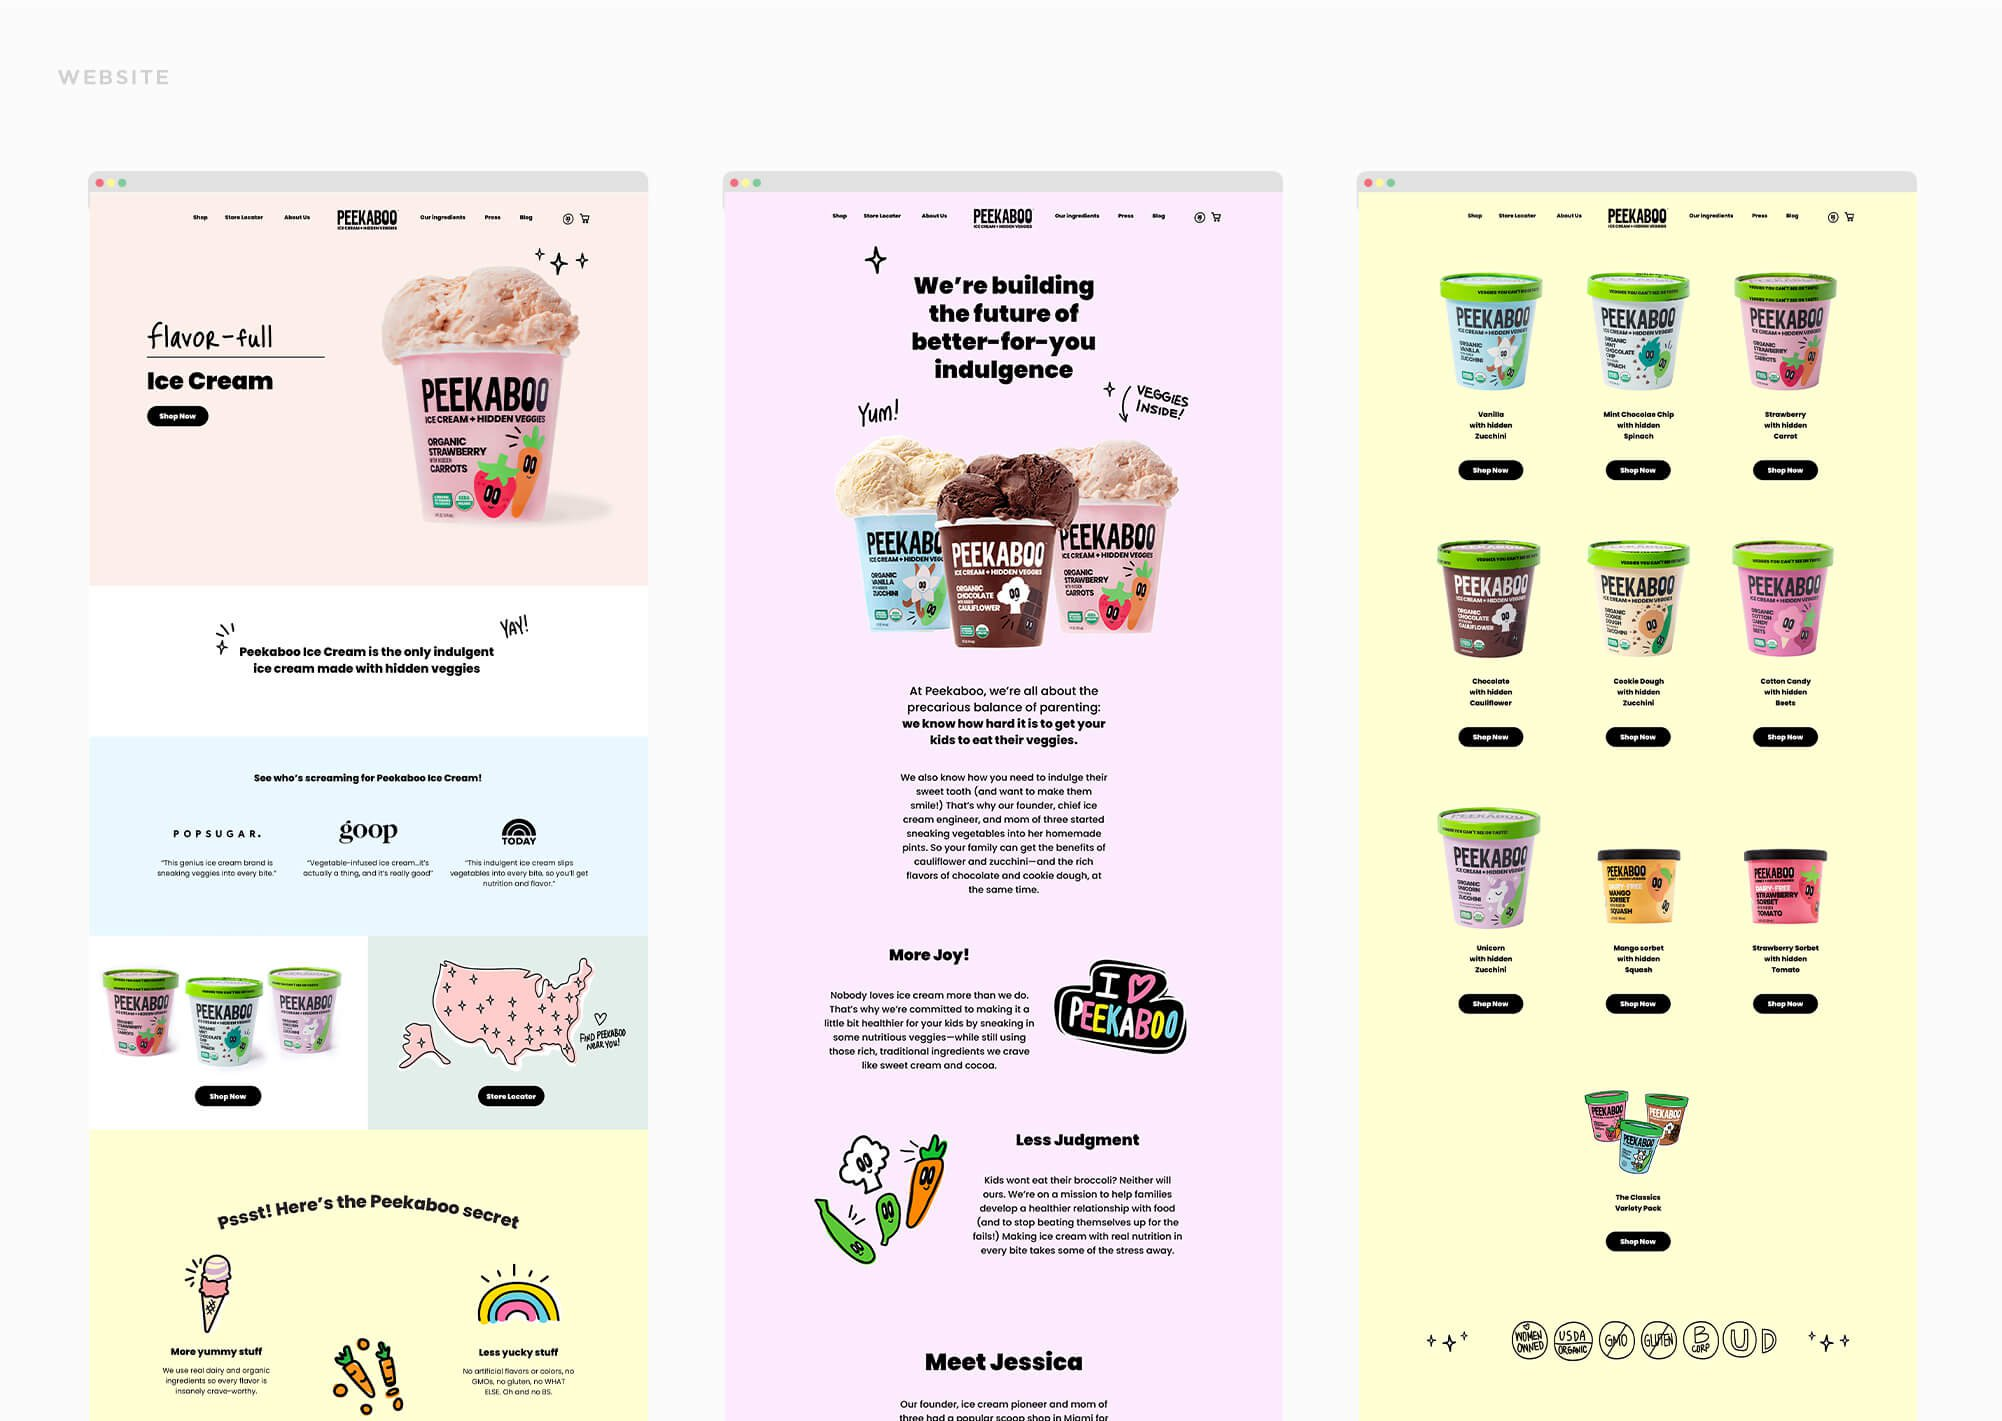 Jacober rebranding of Peekaboo Ice Cream. Photo of new website design